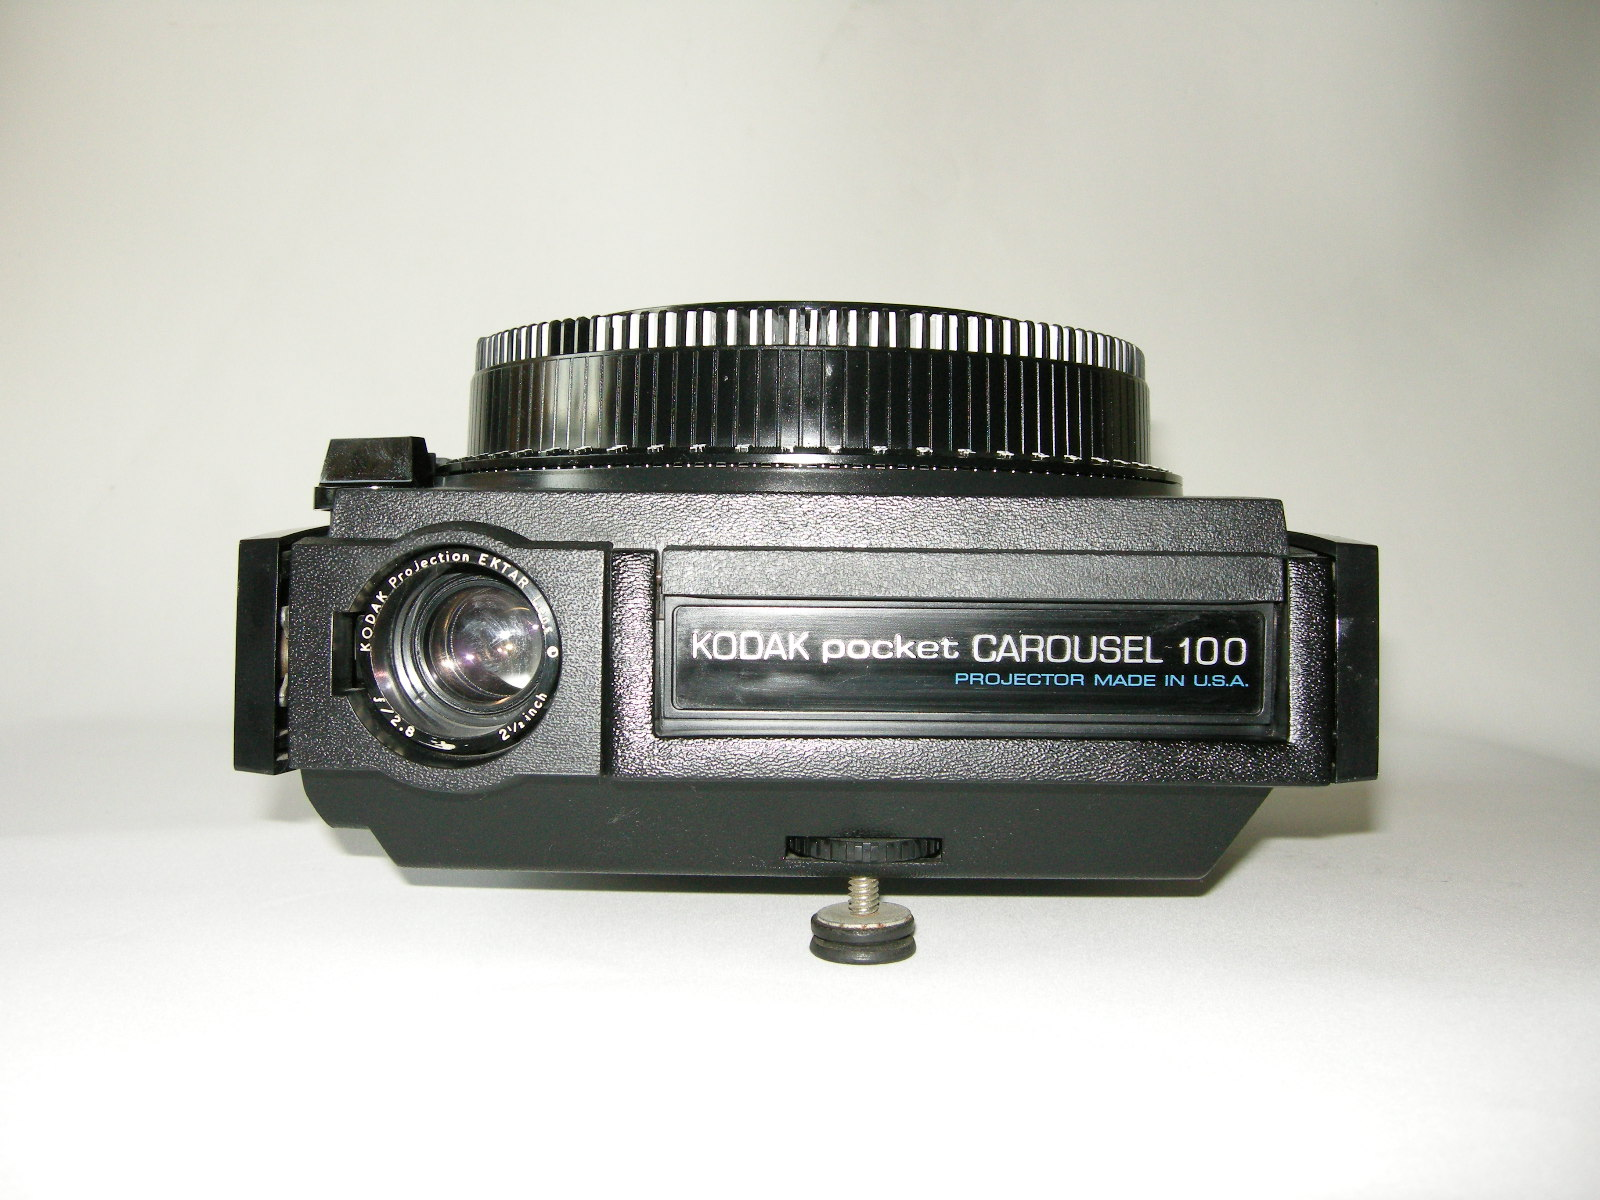 PROJETOR KODAK COROUSEL POCKET 100 C/ CARROUSEL P/ 120 SLIDES, CX E MANUAL (TAM. 110MM)